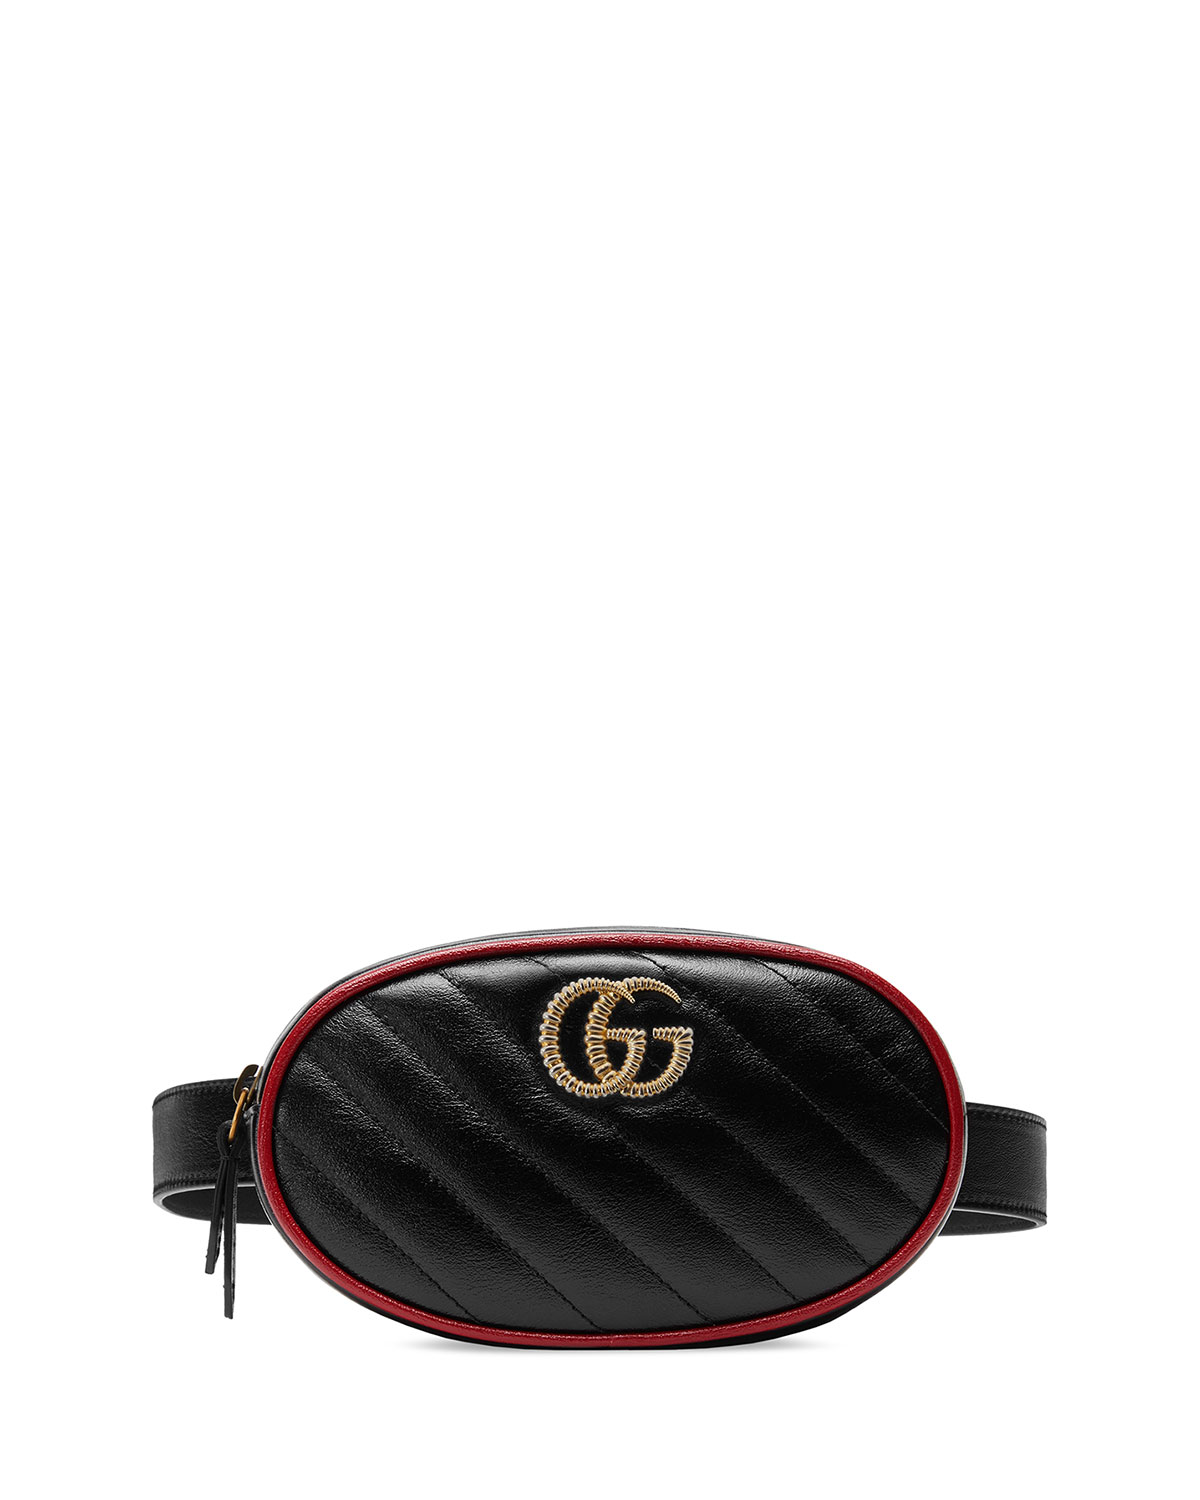 ba243caea859 Gucci Gg Marmont Matelasse Leather Belt Bag - Black In Nero/ Romantic Cerise